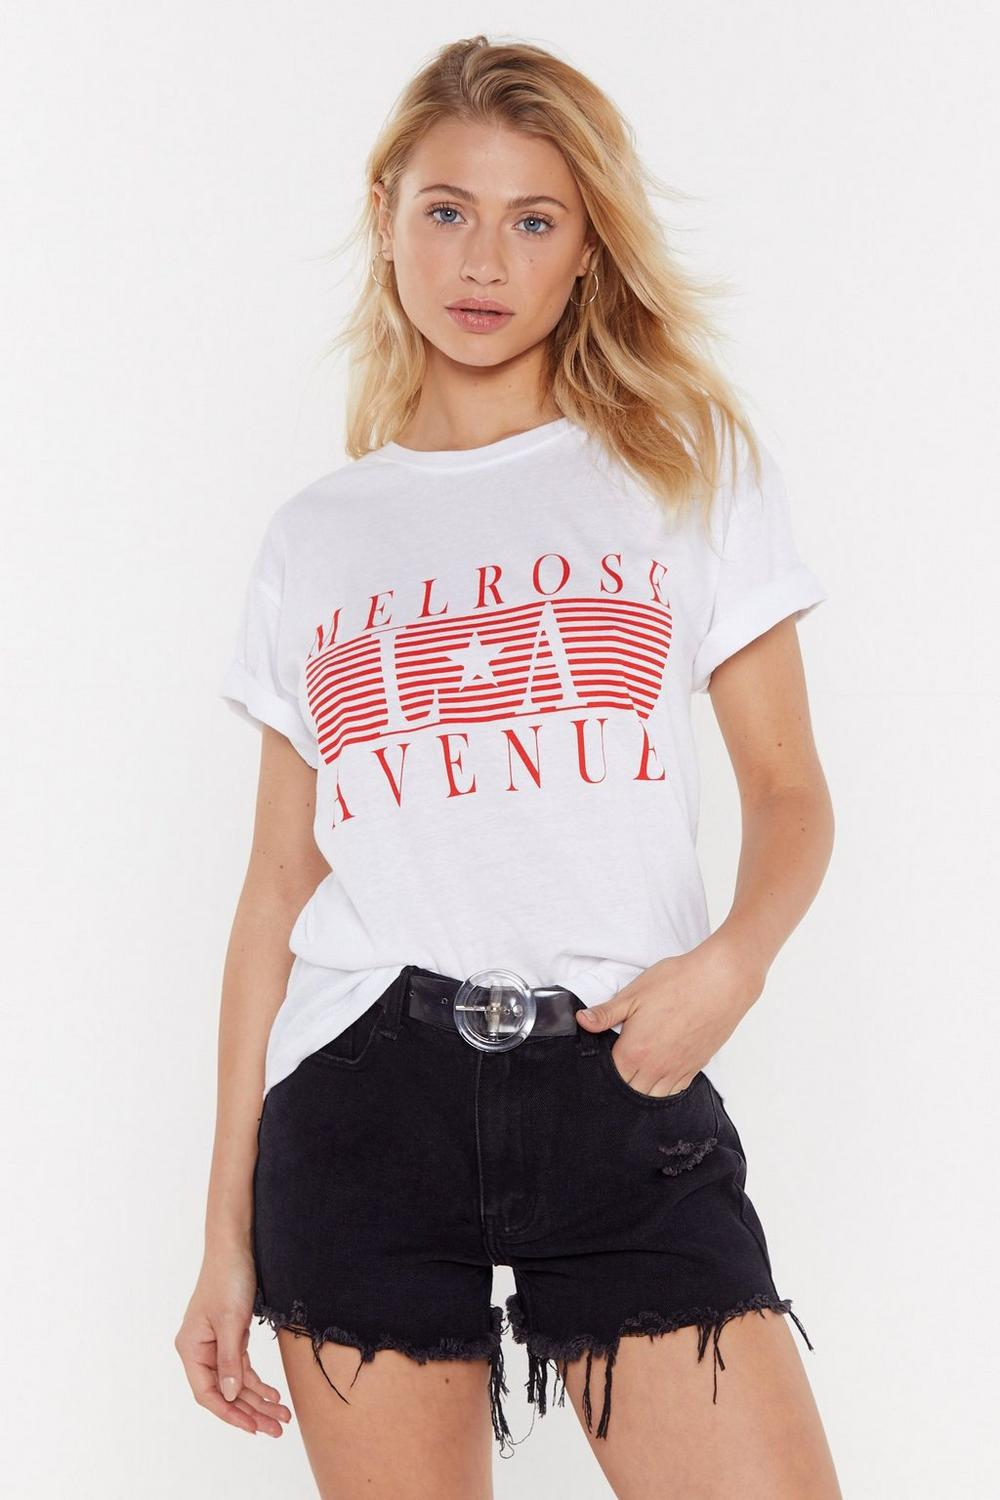 Melrose Avenue Graphic Tee by Nasty Gal